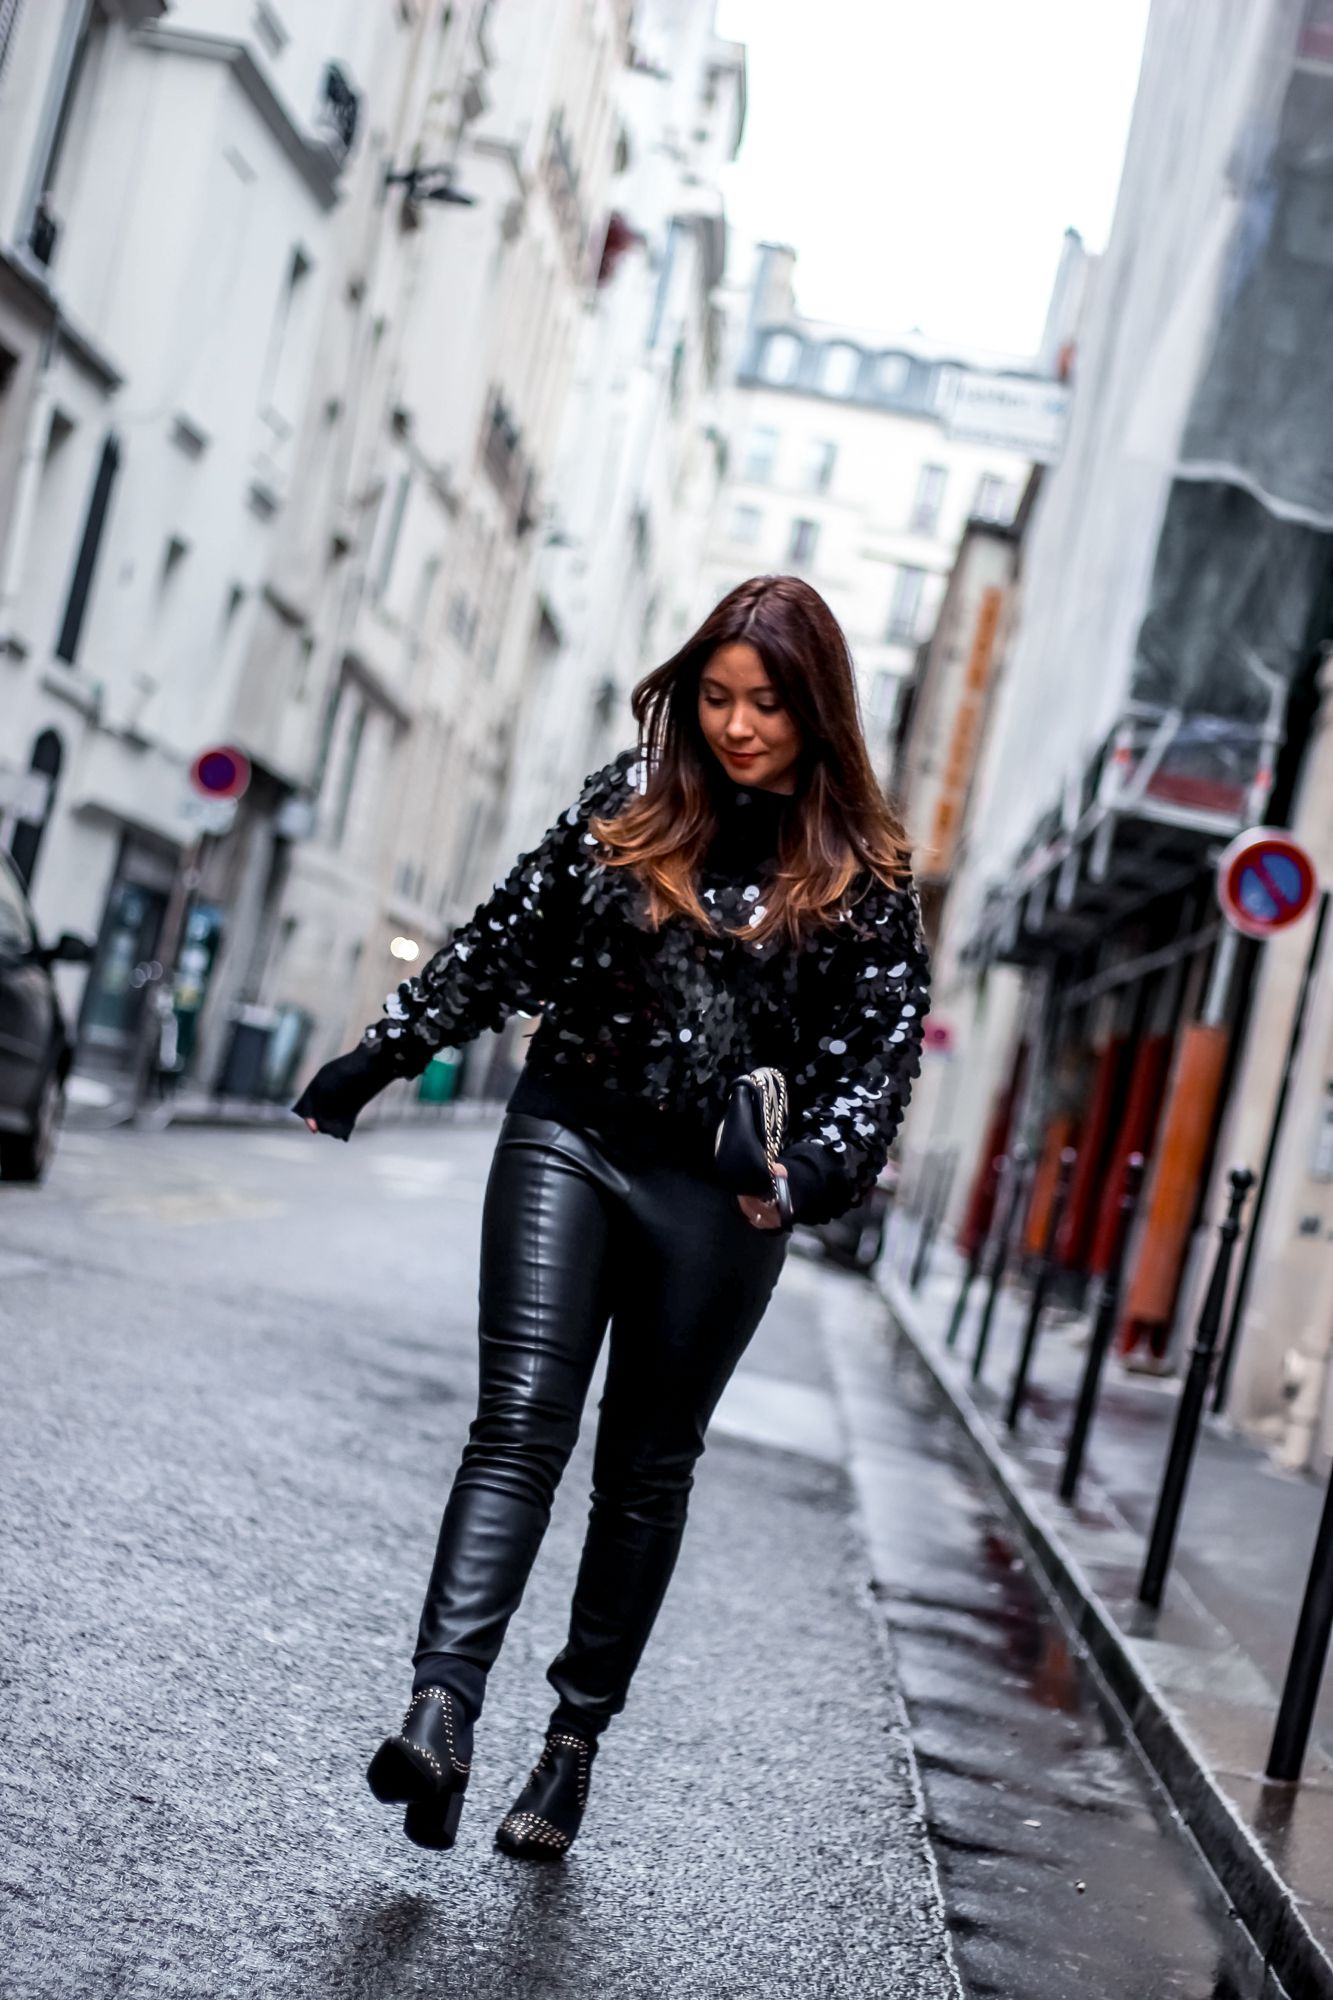 the green ananas, blog mode, pull sequin, look de fêtes, pinterest, mango, zara, sac gucci, bottines clous, pull sequins femme, christmas #2, sac mango, black look, porter du noir, look noir, boohoo, asos, sequins